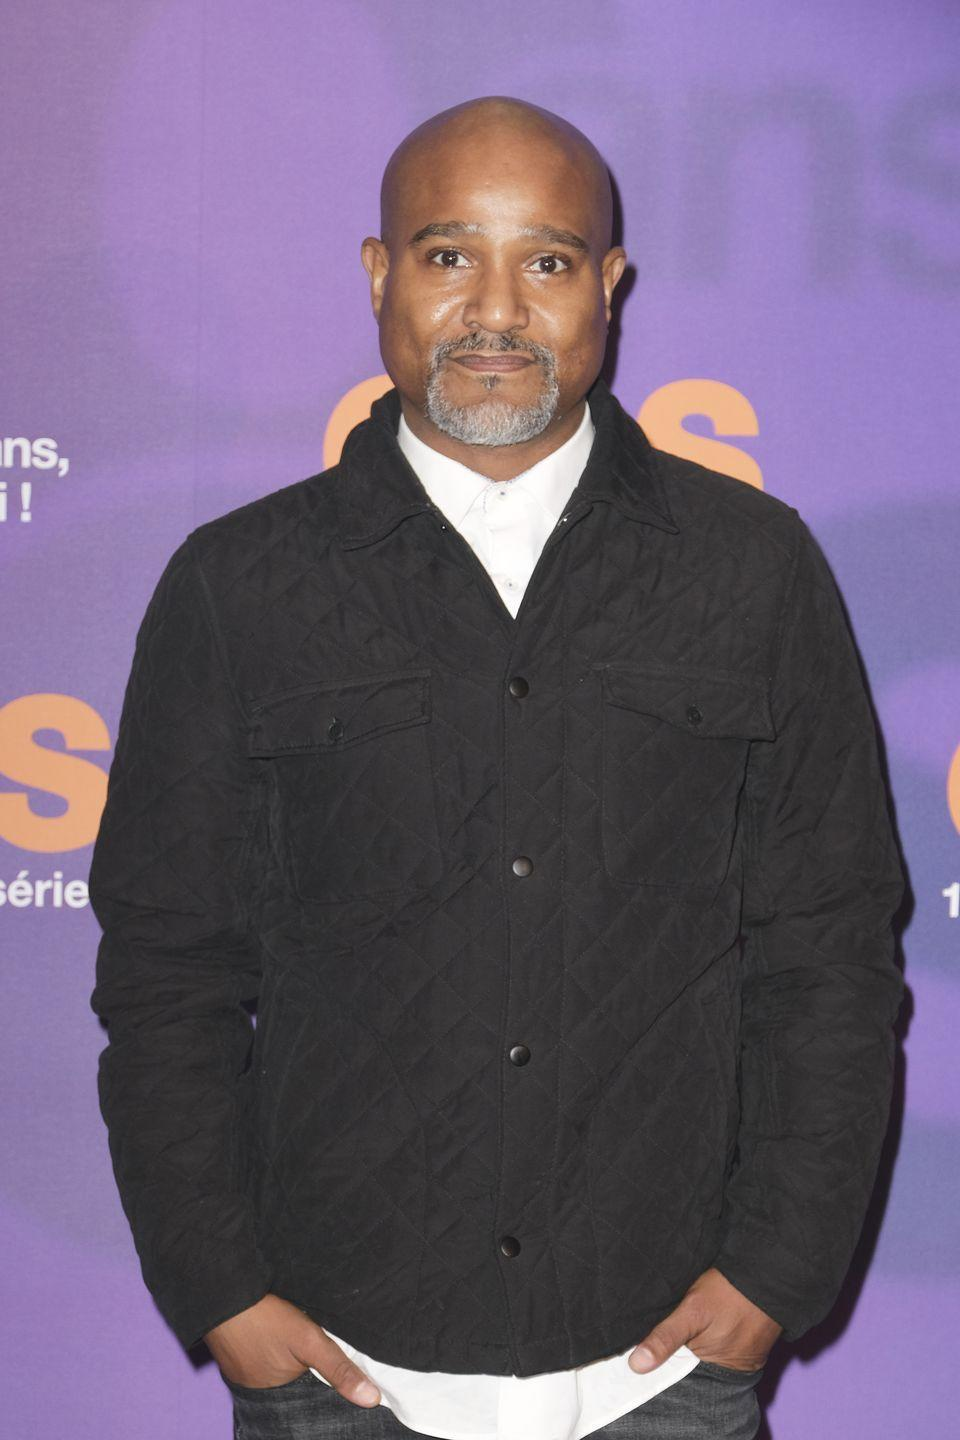 <p>Gilliam stuck it out, and it paid off, as he and Lombardozzi got more action on-screen later in the series. Following <em>The Wire</em>, Gilliam starred as Detective Daniels on <em>Law & Order: Criminal Intent</em> and Dr. Alan Deaton on <em>Teen Wolf</em>. His most recent and prominent role is as Father Gabriel on AMC's <em>The Walking Dead</em>.</p>